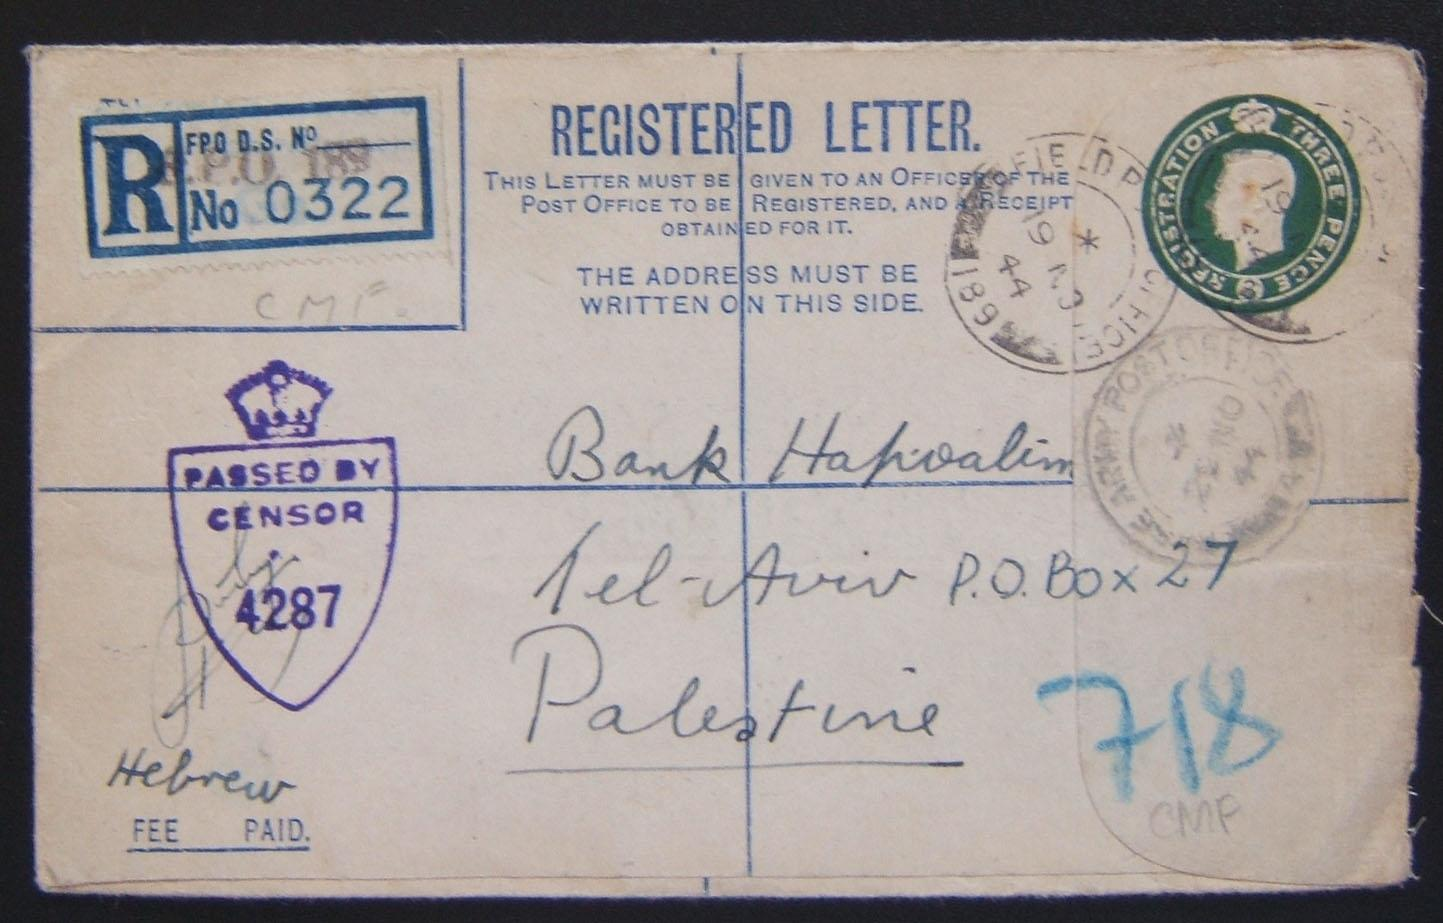 Early Jewish Brigade field mail: 1939/44 British Army KGVI registration envelope (Ba BF.02 A2) ex FPO 189 (north Italy) to bank in TEL AVIV, 19 NO 44, via BAPO 4 (Cairo) 29 NO 44,